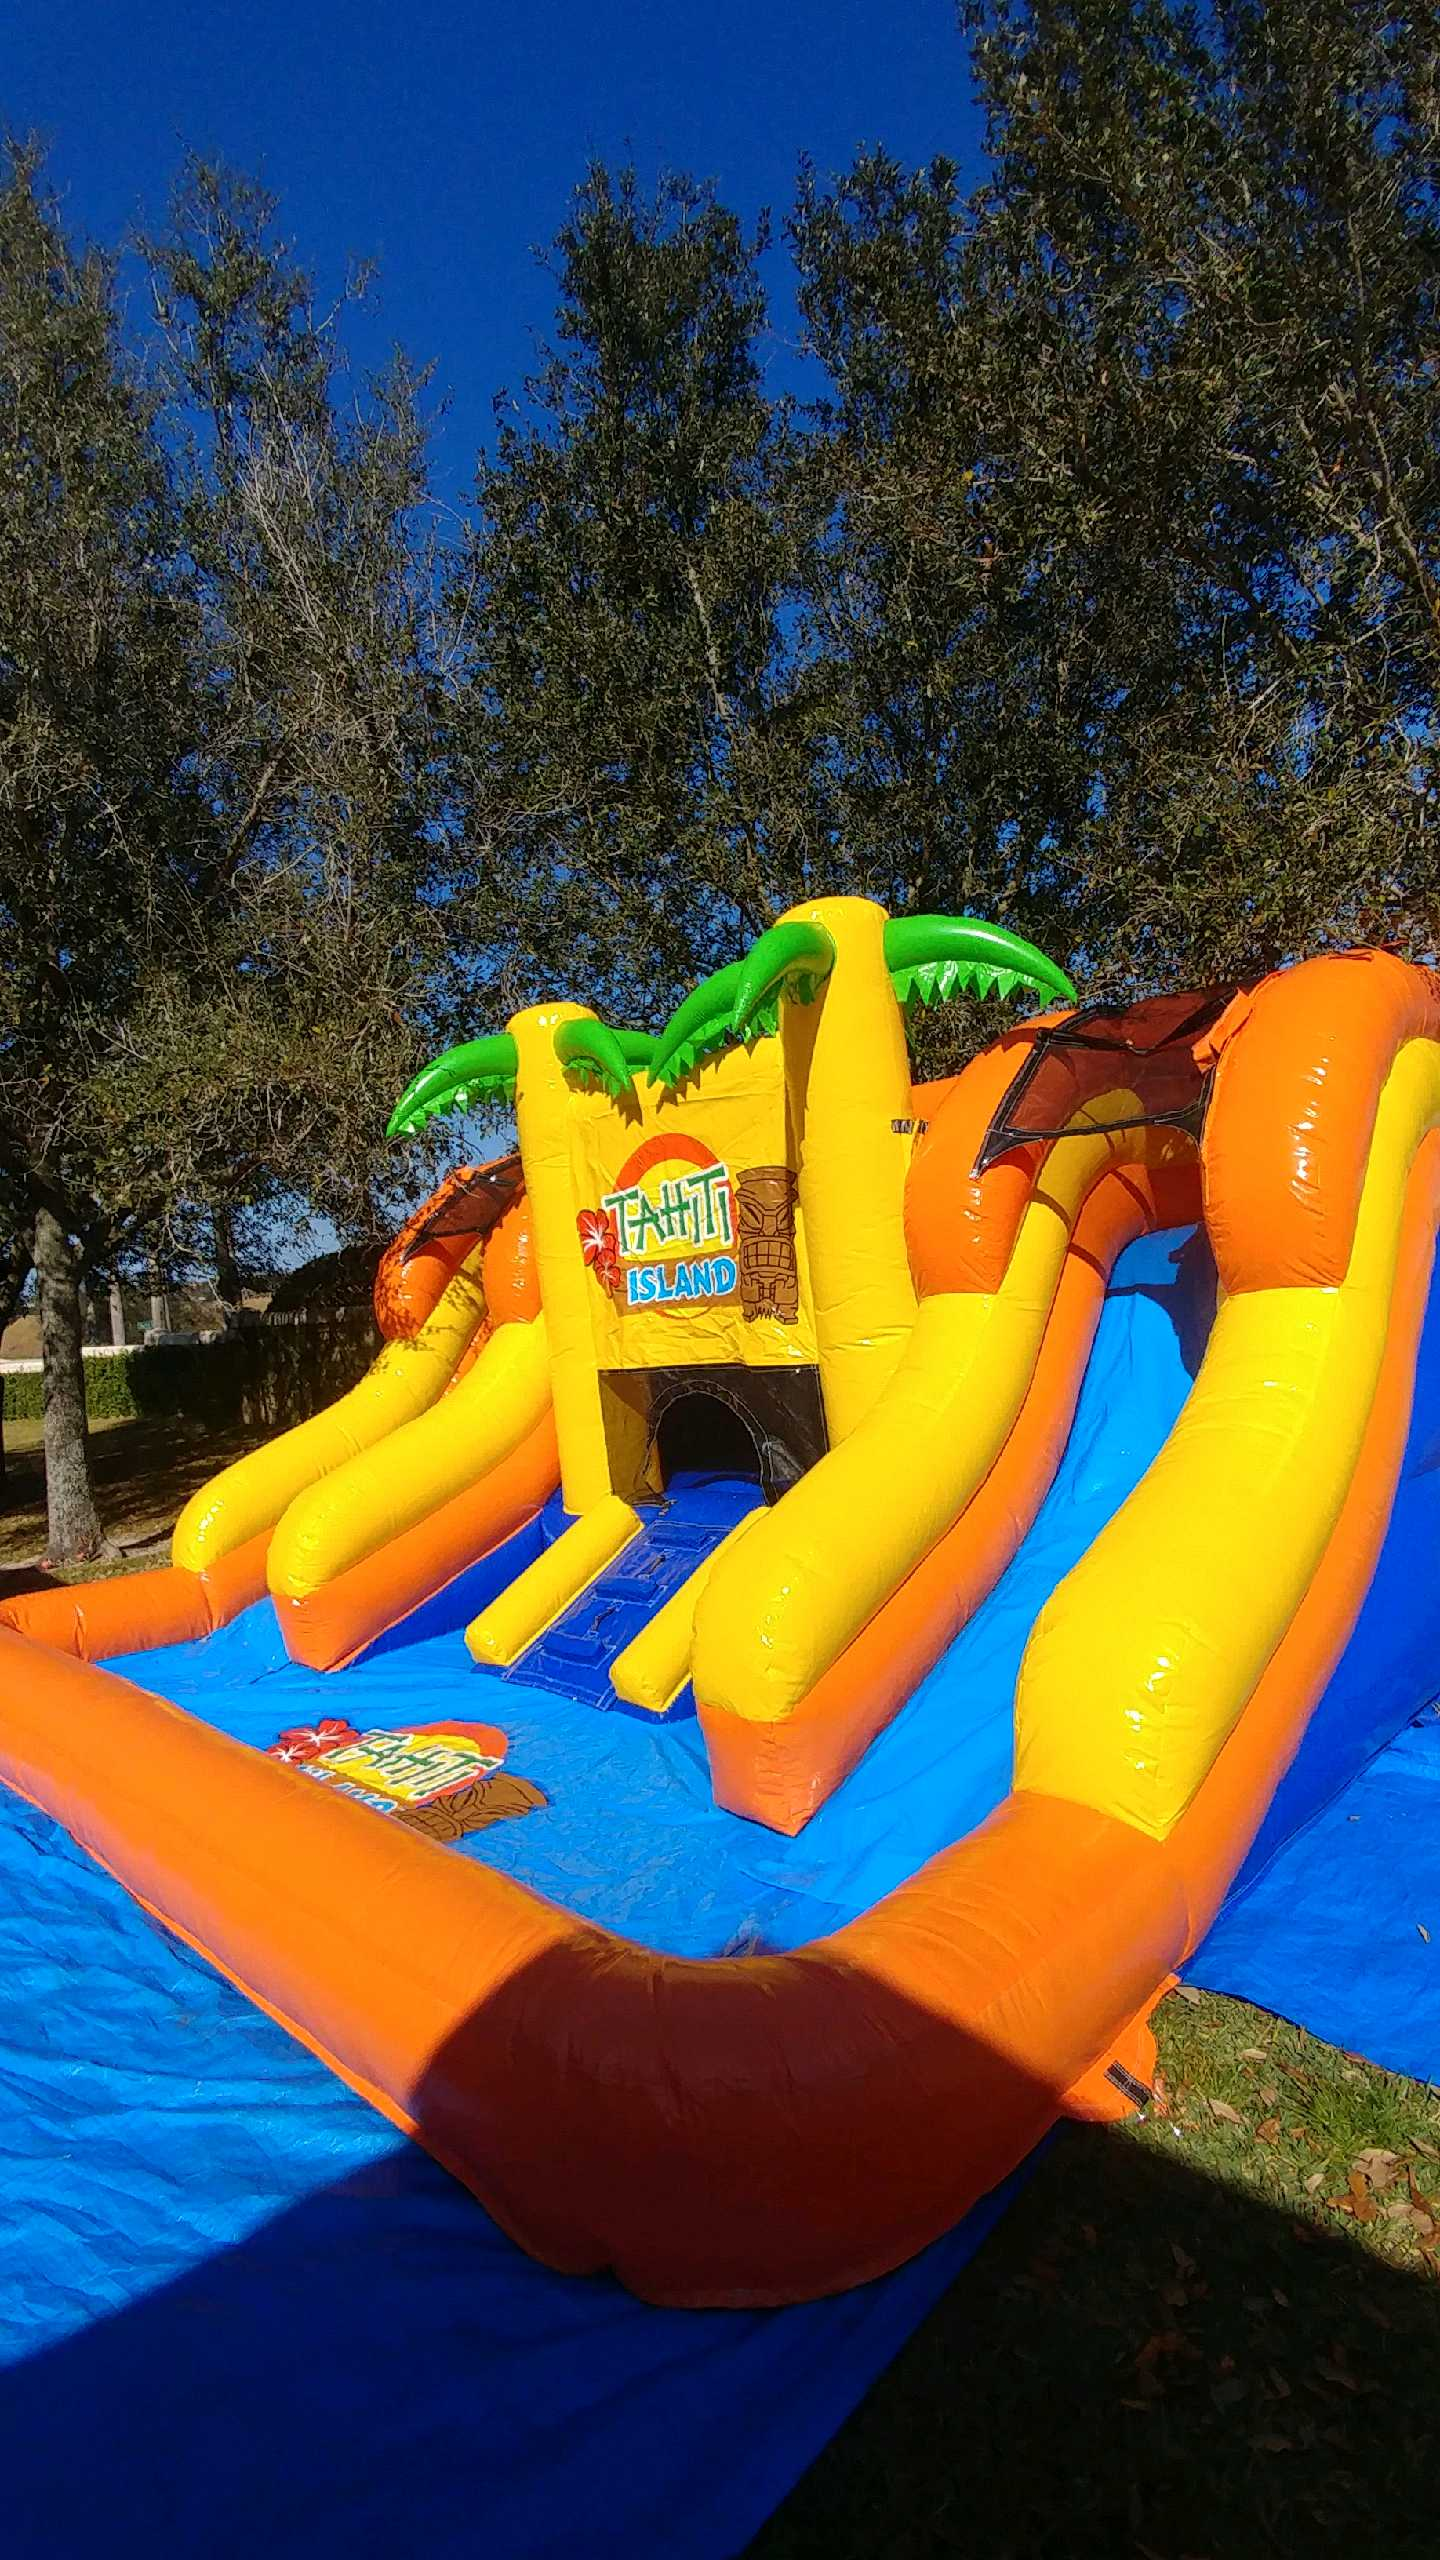 Tahiti Island Toddler Bounce house.jpg